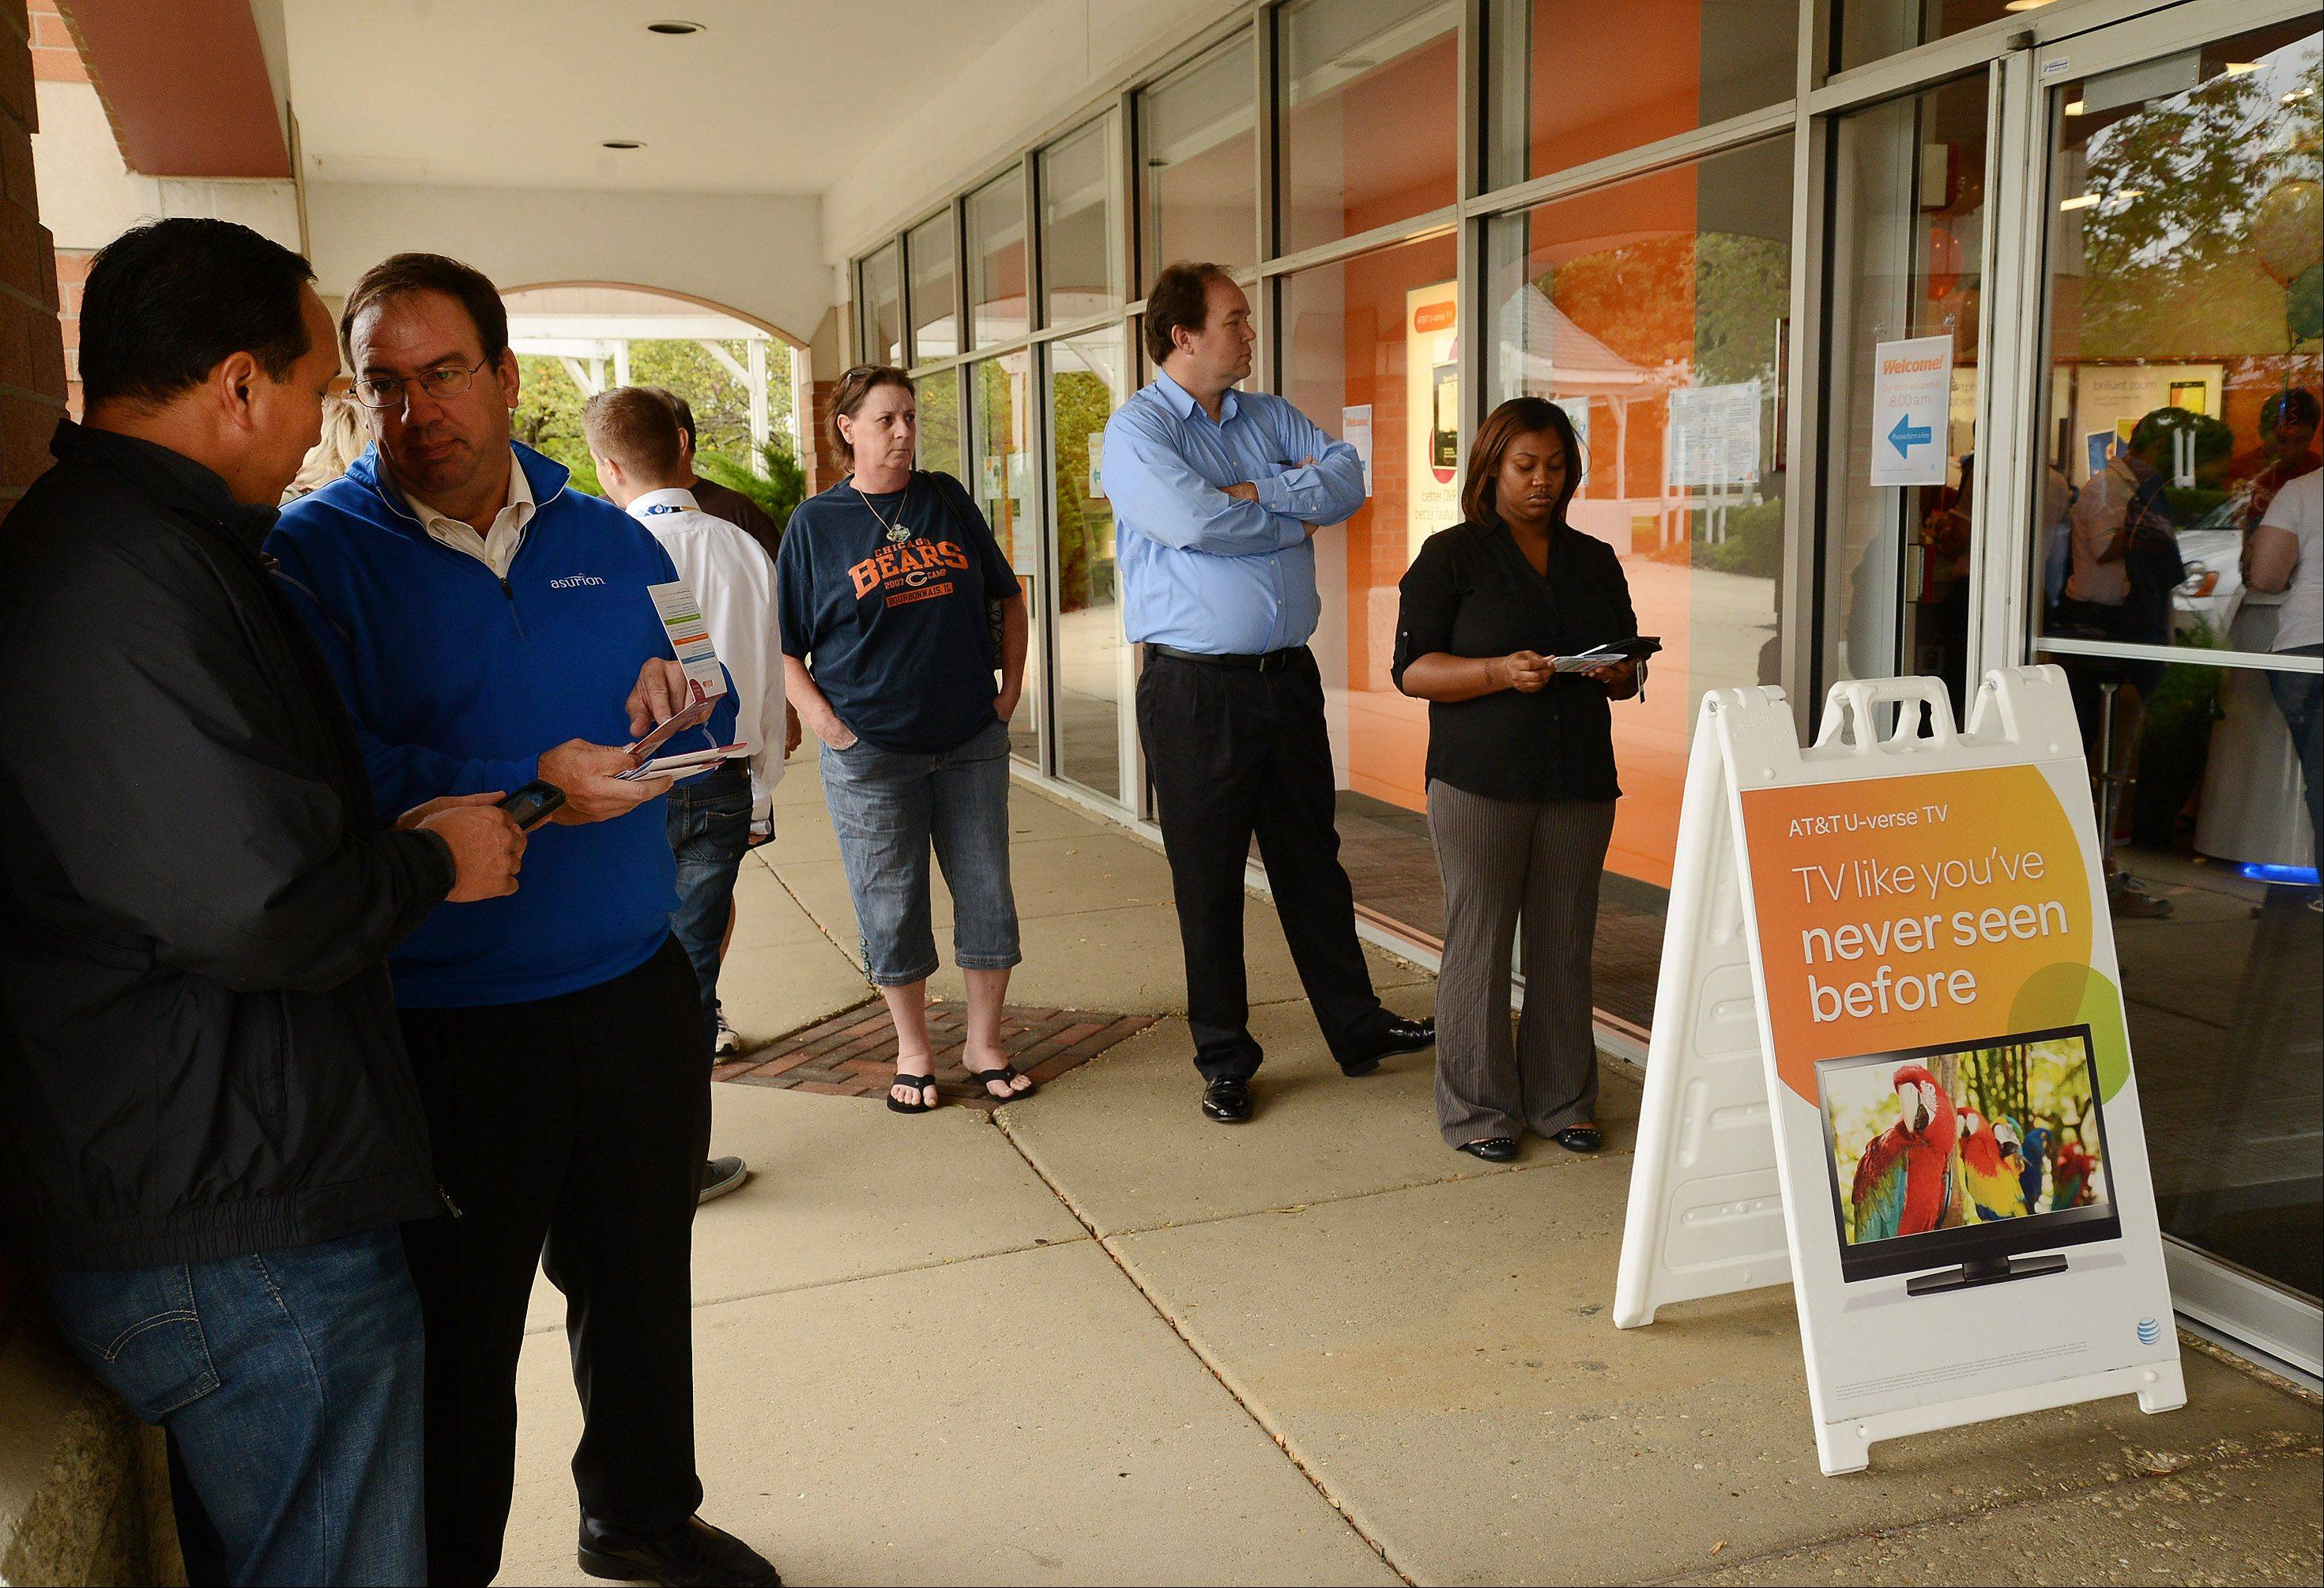 People line up outside to purchase the new iPhone 5S at the ATT store in Schaumburg.